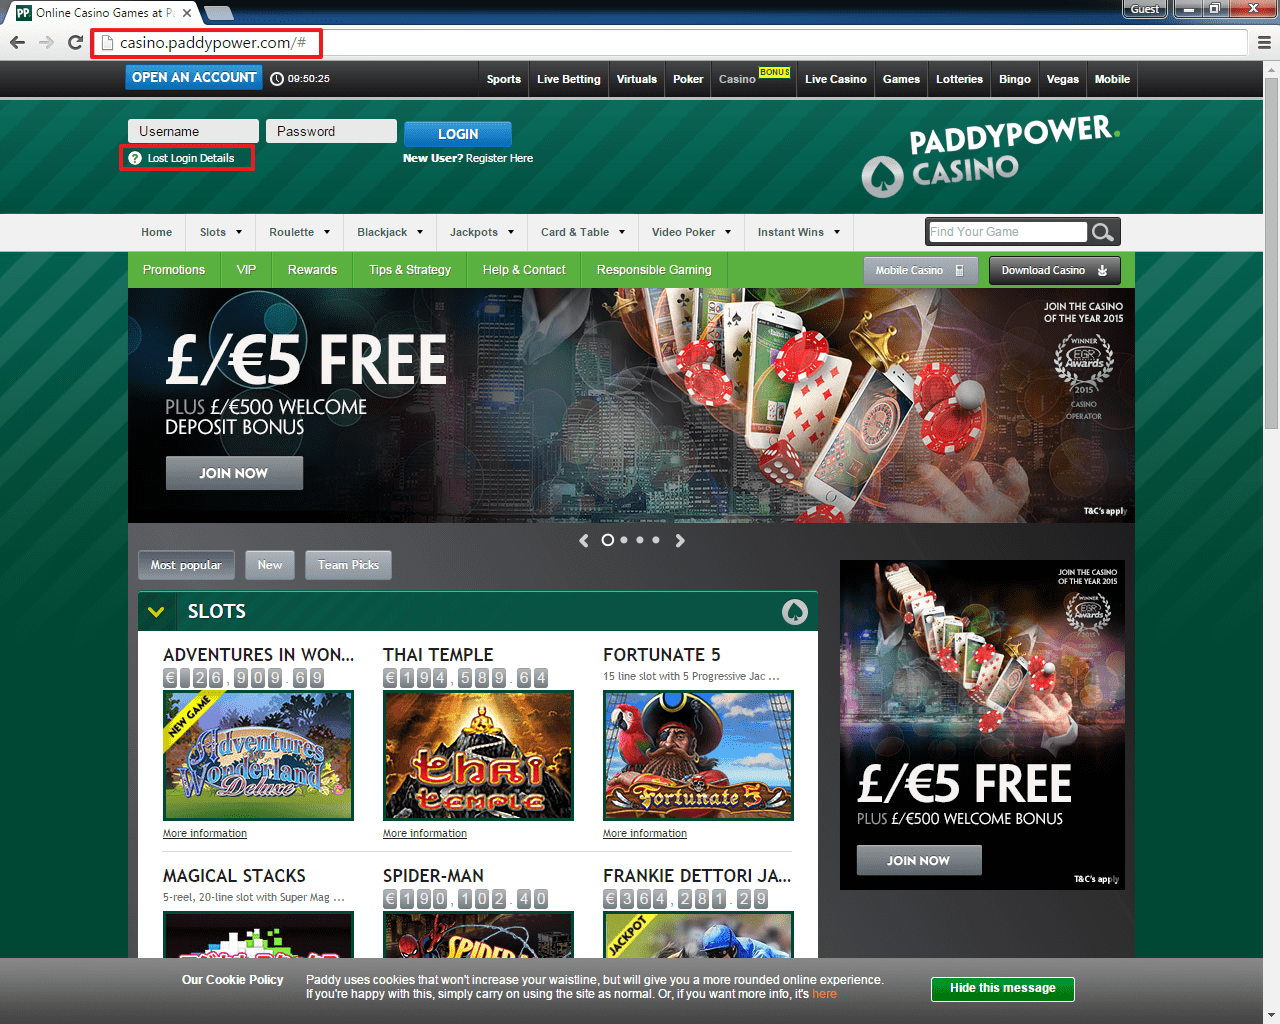 Paddy Power casino login 2